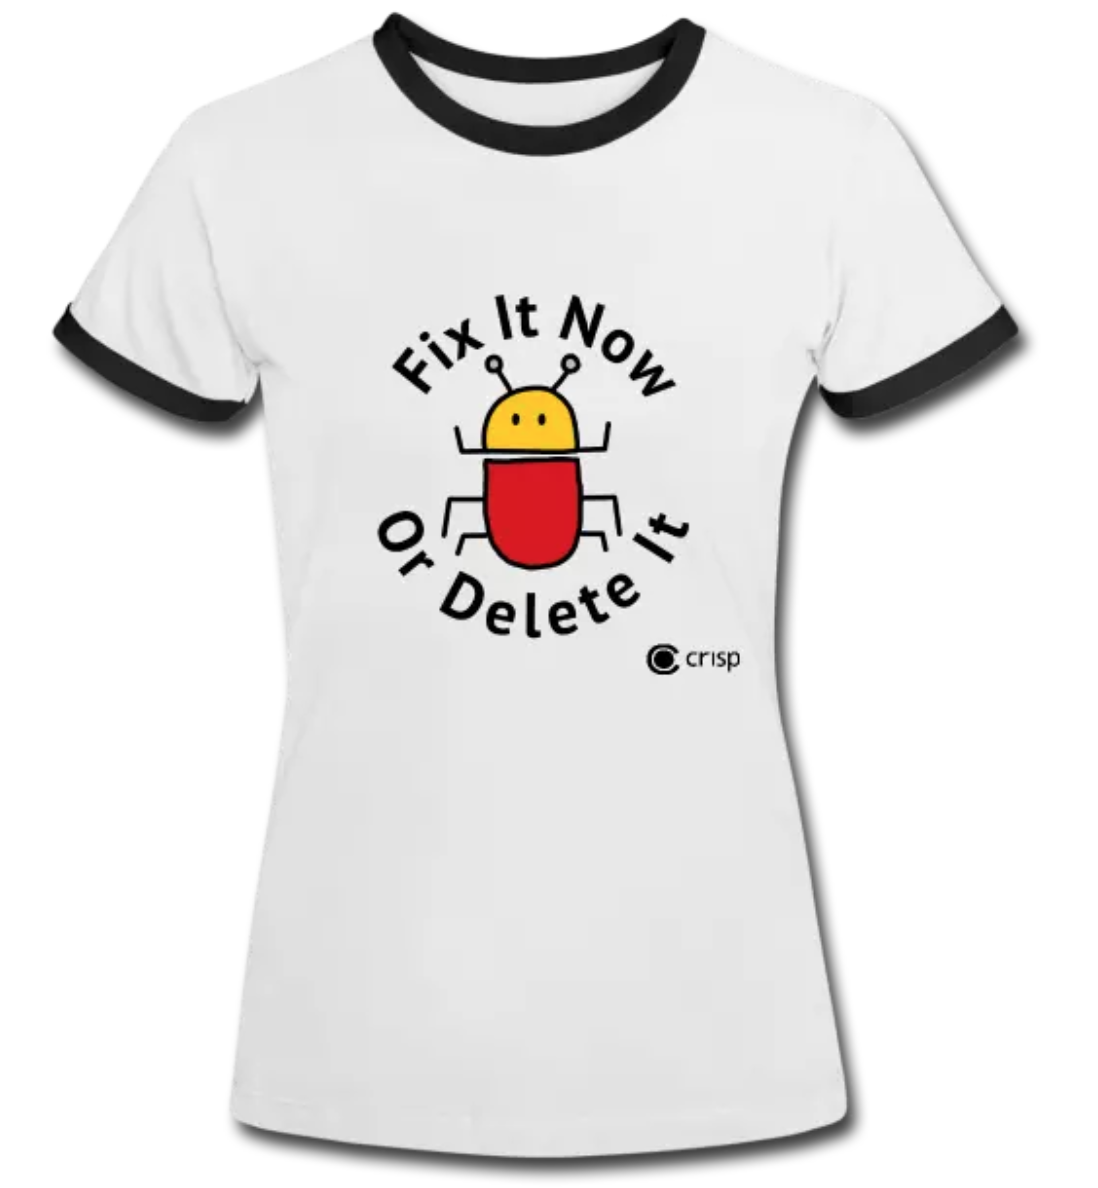 White t-shirt with black collar with the logo picturing a bug and the text - Fix it now or delete it